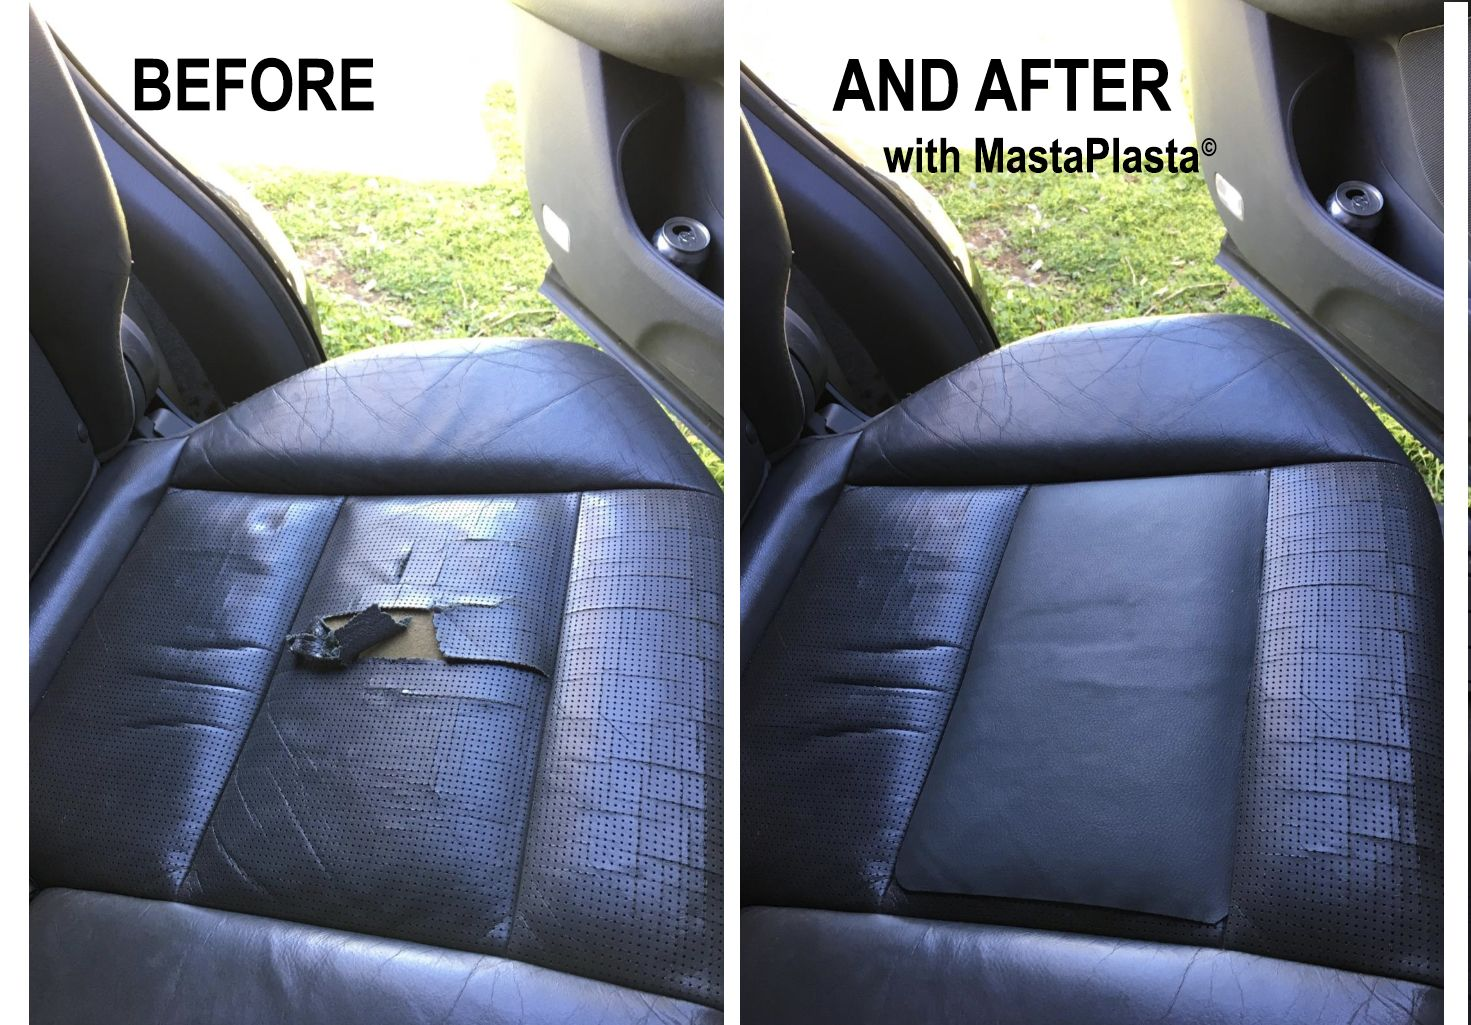 Automotive Leather Repair Flash, How Much To Repair Small Tear In Leather Car Seat